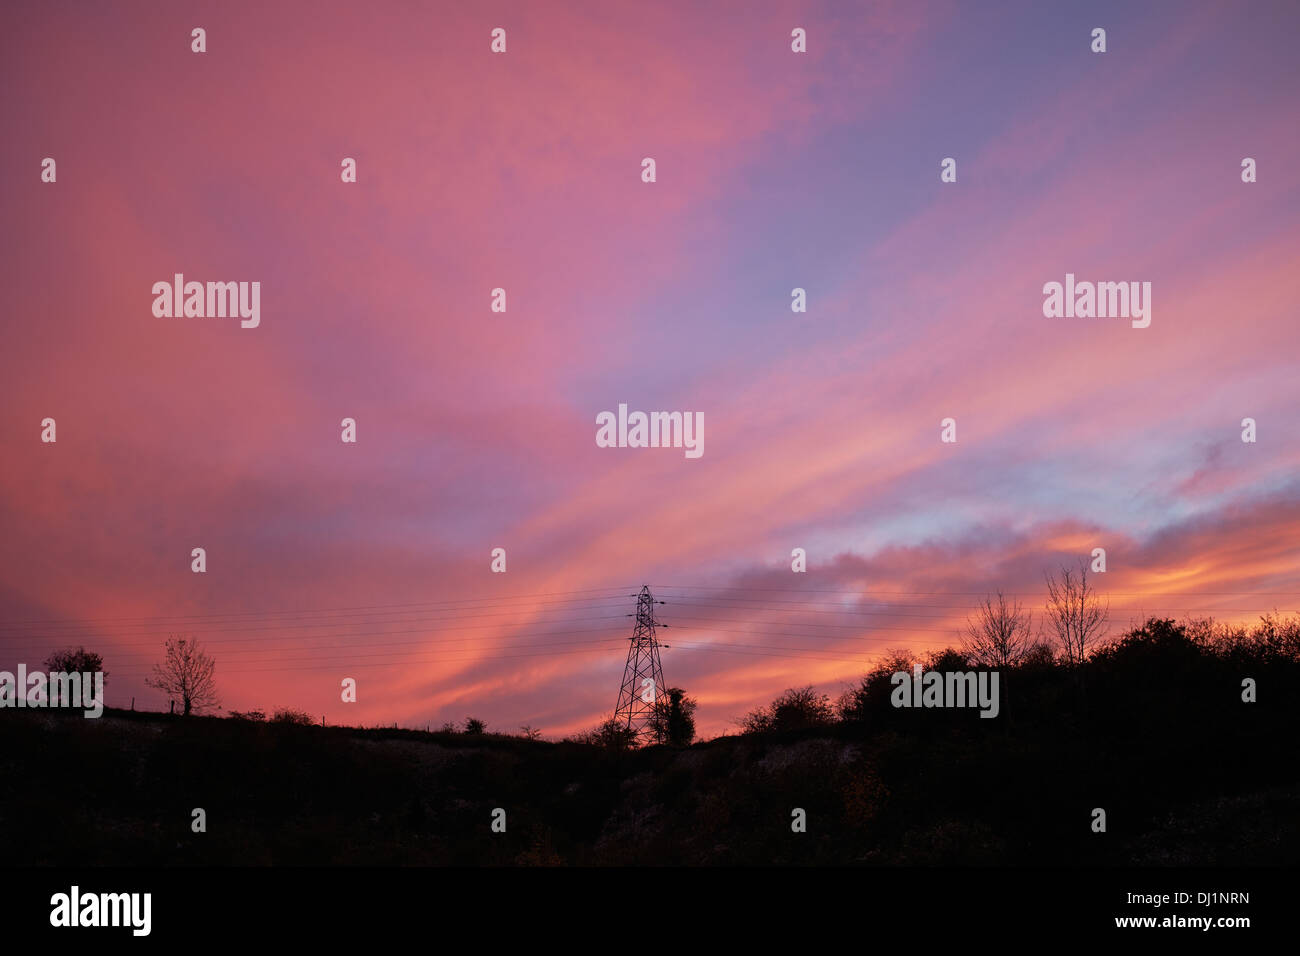 Red sunset behind an electricity pylon - Stock Image